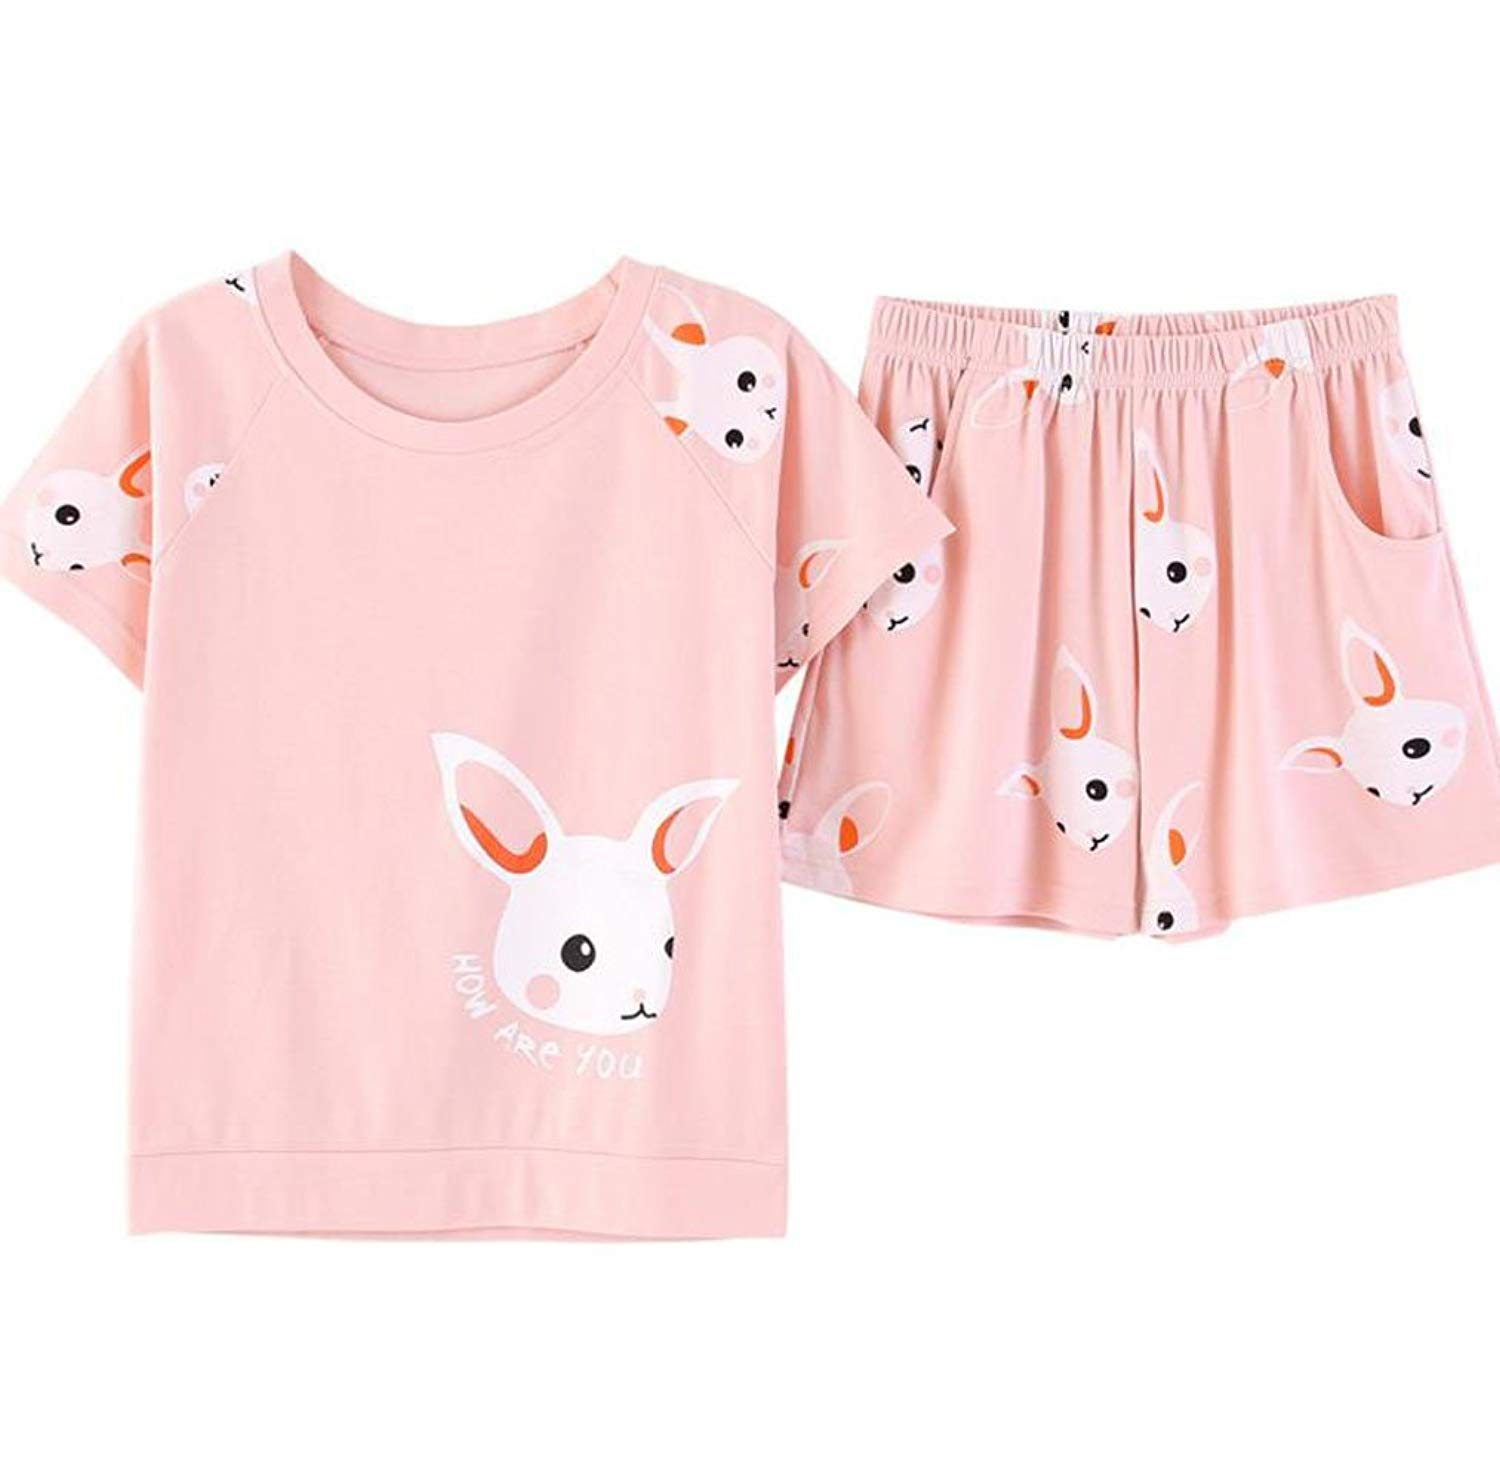 e028c1e21a5 Cheap Hot Nighty For Girls, find Hot Nighty For Girls deals on line ...